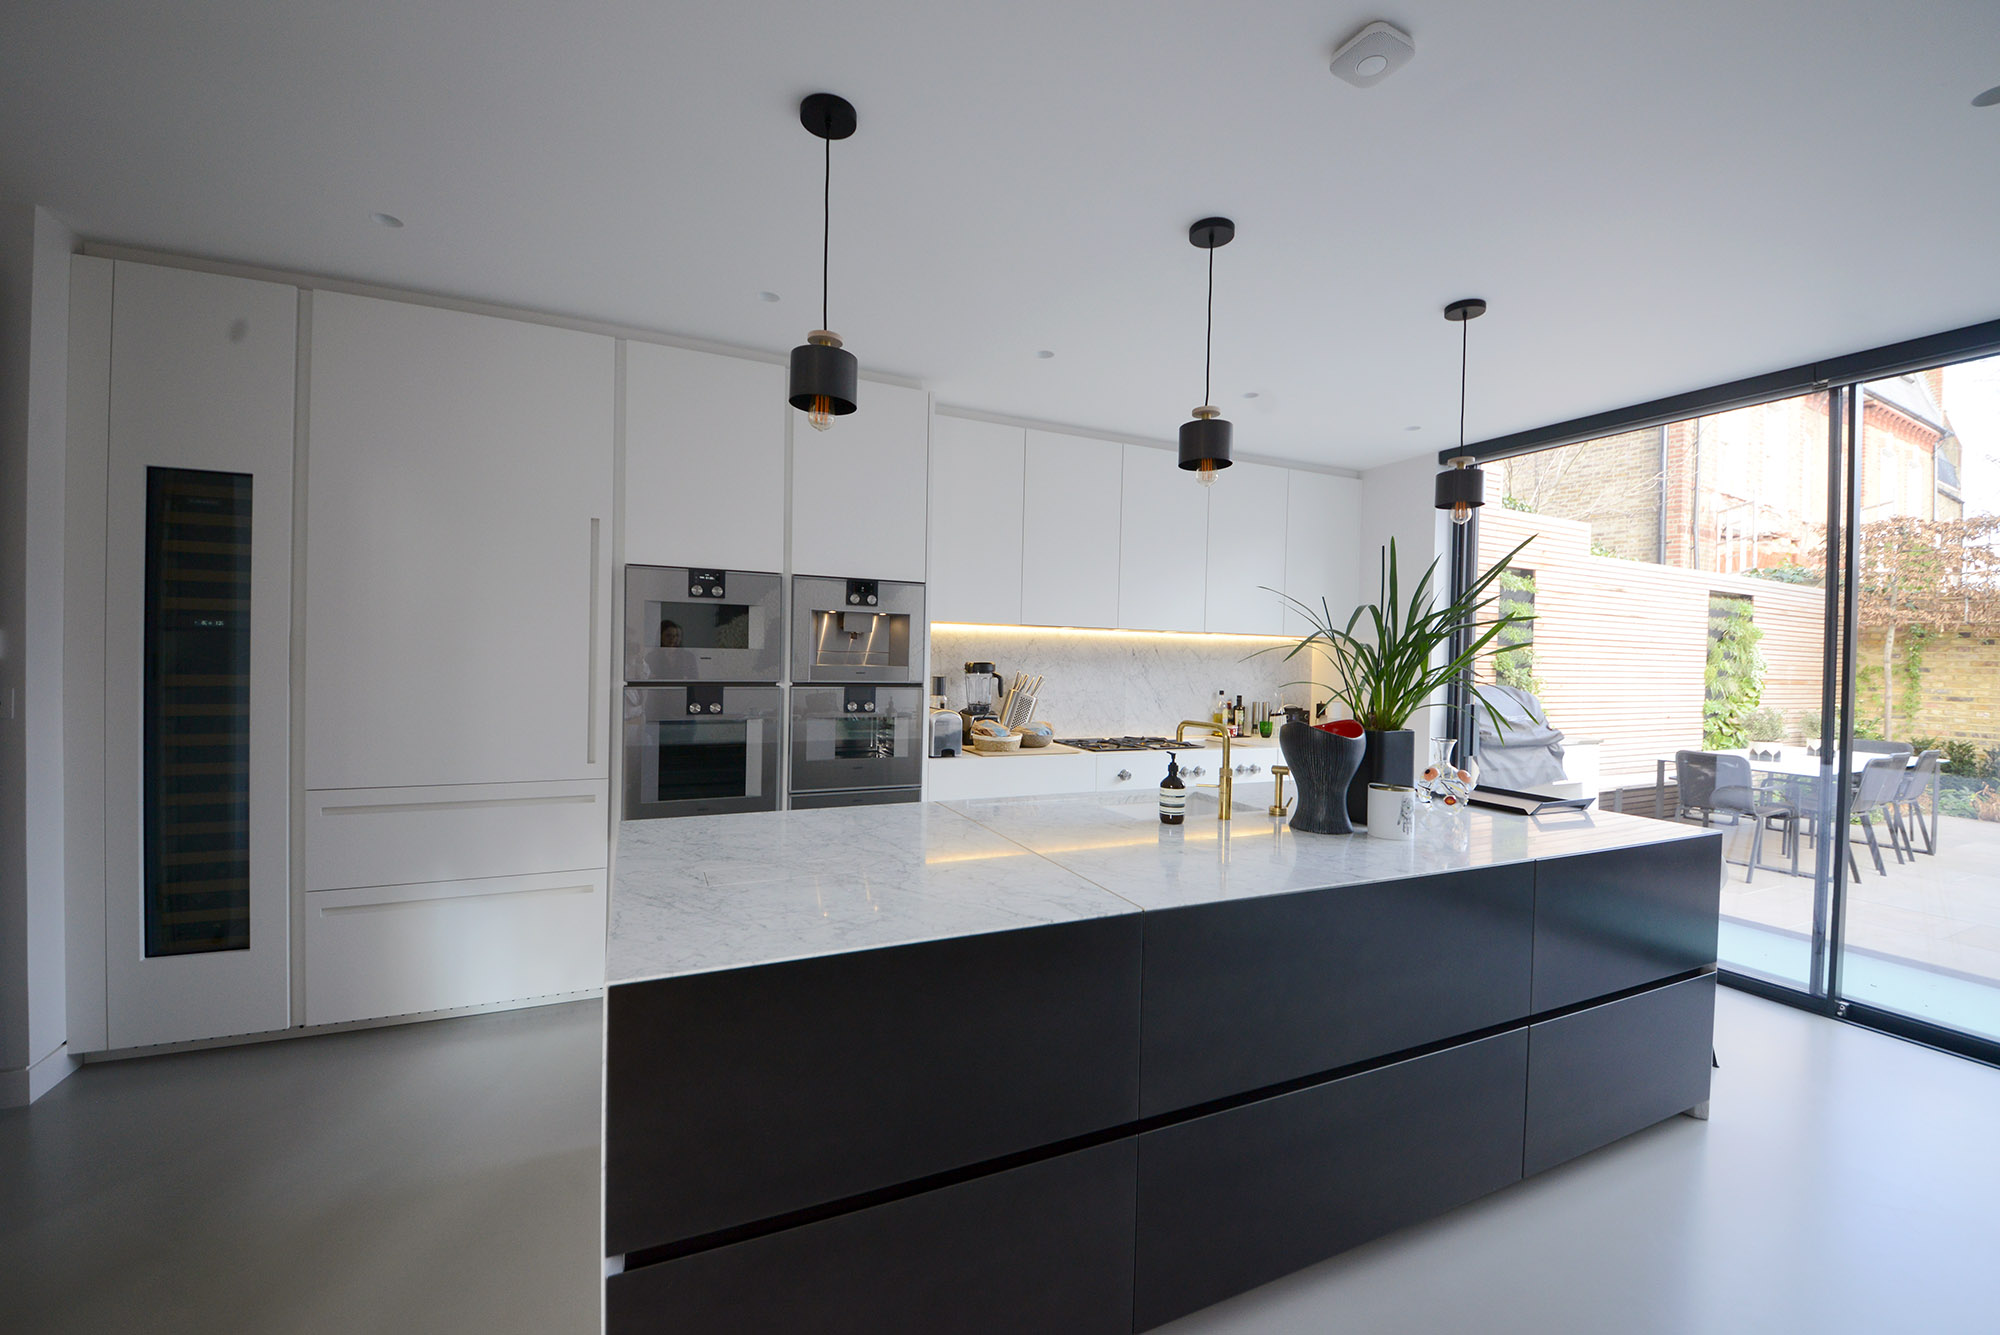 </p> <p>Find your ideal home design pro on designfor-me.com - get matched and see who's interested in your home project. Click image to see more inspiration from our design pros</p> <p>Design by Eleri, architect from Reading, South East</p> <p>#architecture #homedesign #modernhomes #homeinspiration #kitchens #kitchendesign #kitcheninspiration #kitchenideas #kitchengoals </p> <p>